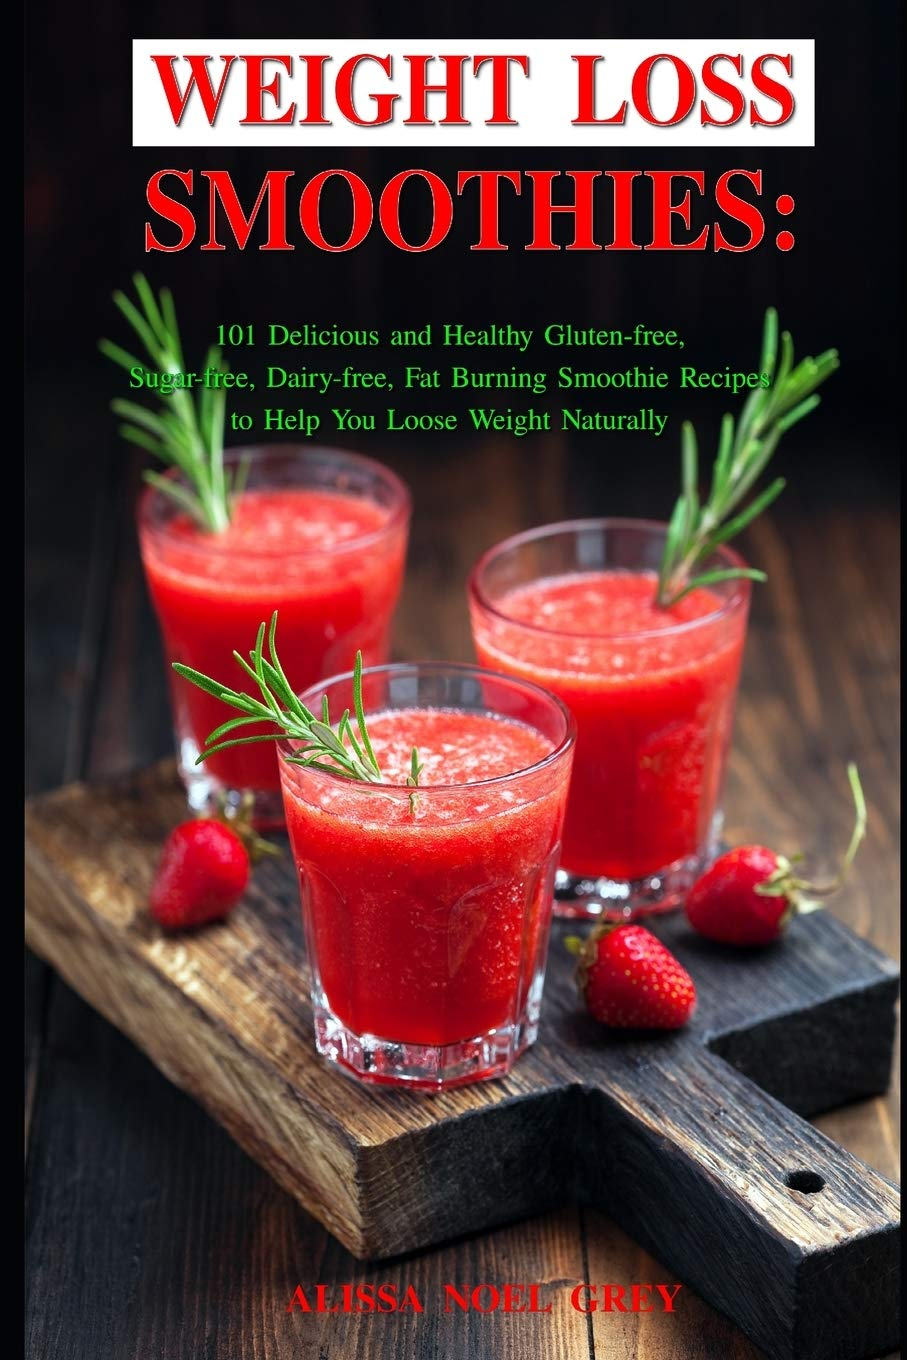 Weight Loss Smoothies 101 Delicious And Healthy Gluten Free Sugar Free Dairy Free Fat Burning Smoothie Recipes To Help You Loose Weight Naturally Grey Alissa Noel 9781520622729 Amazon Com Books